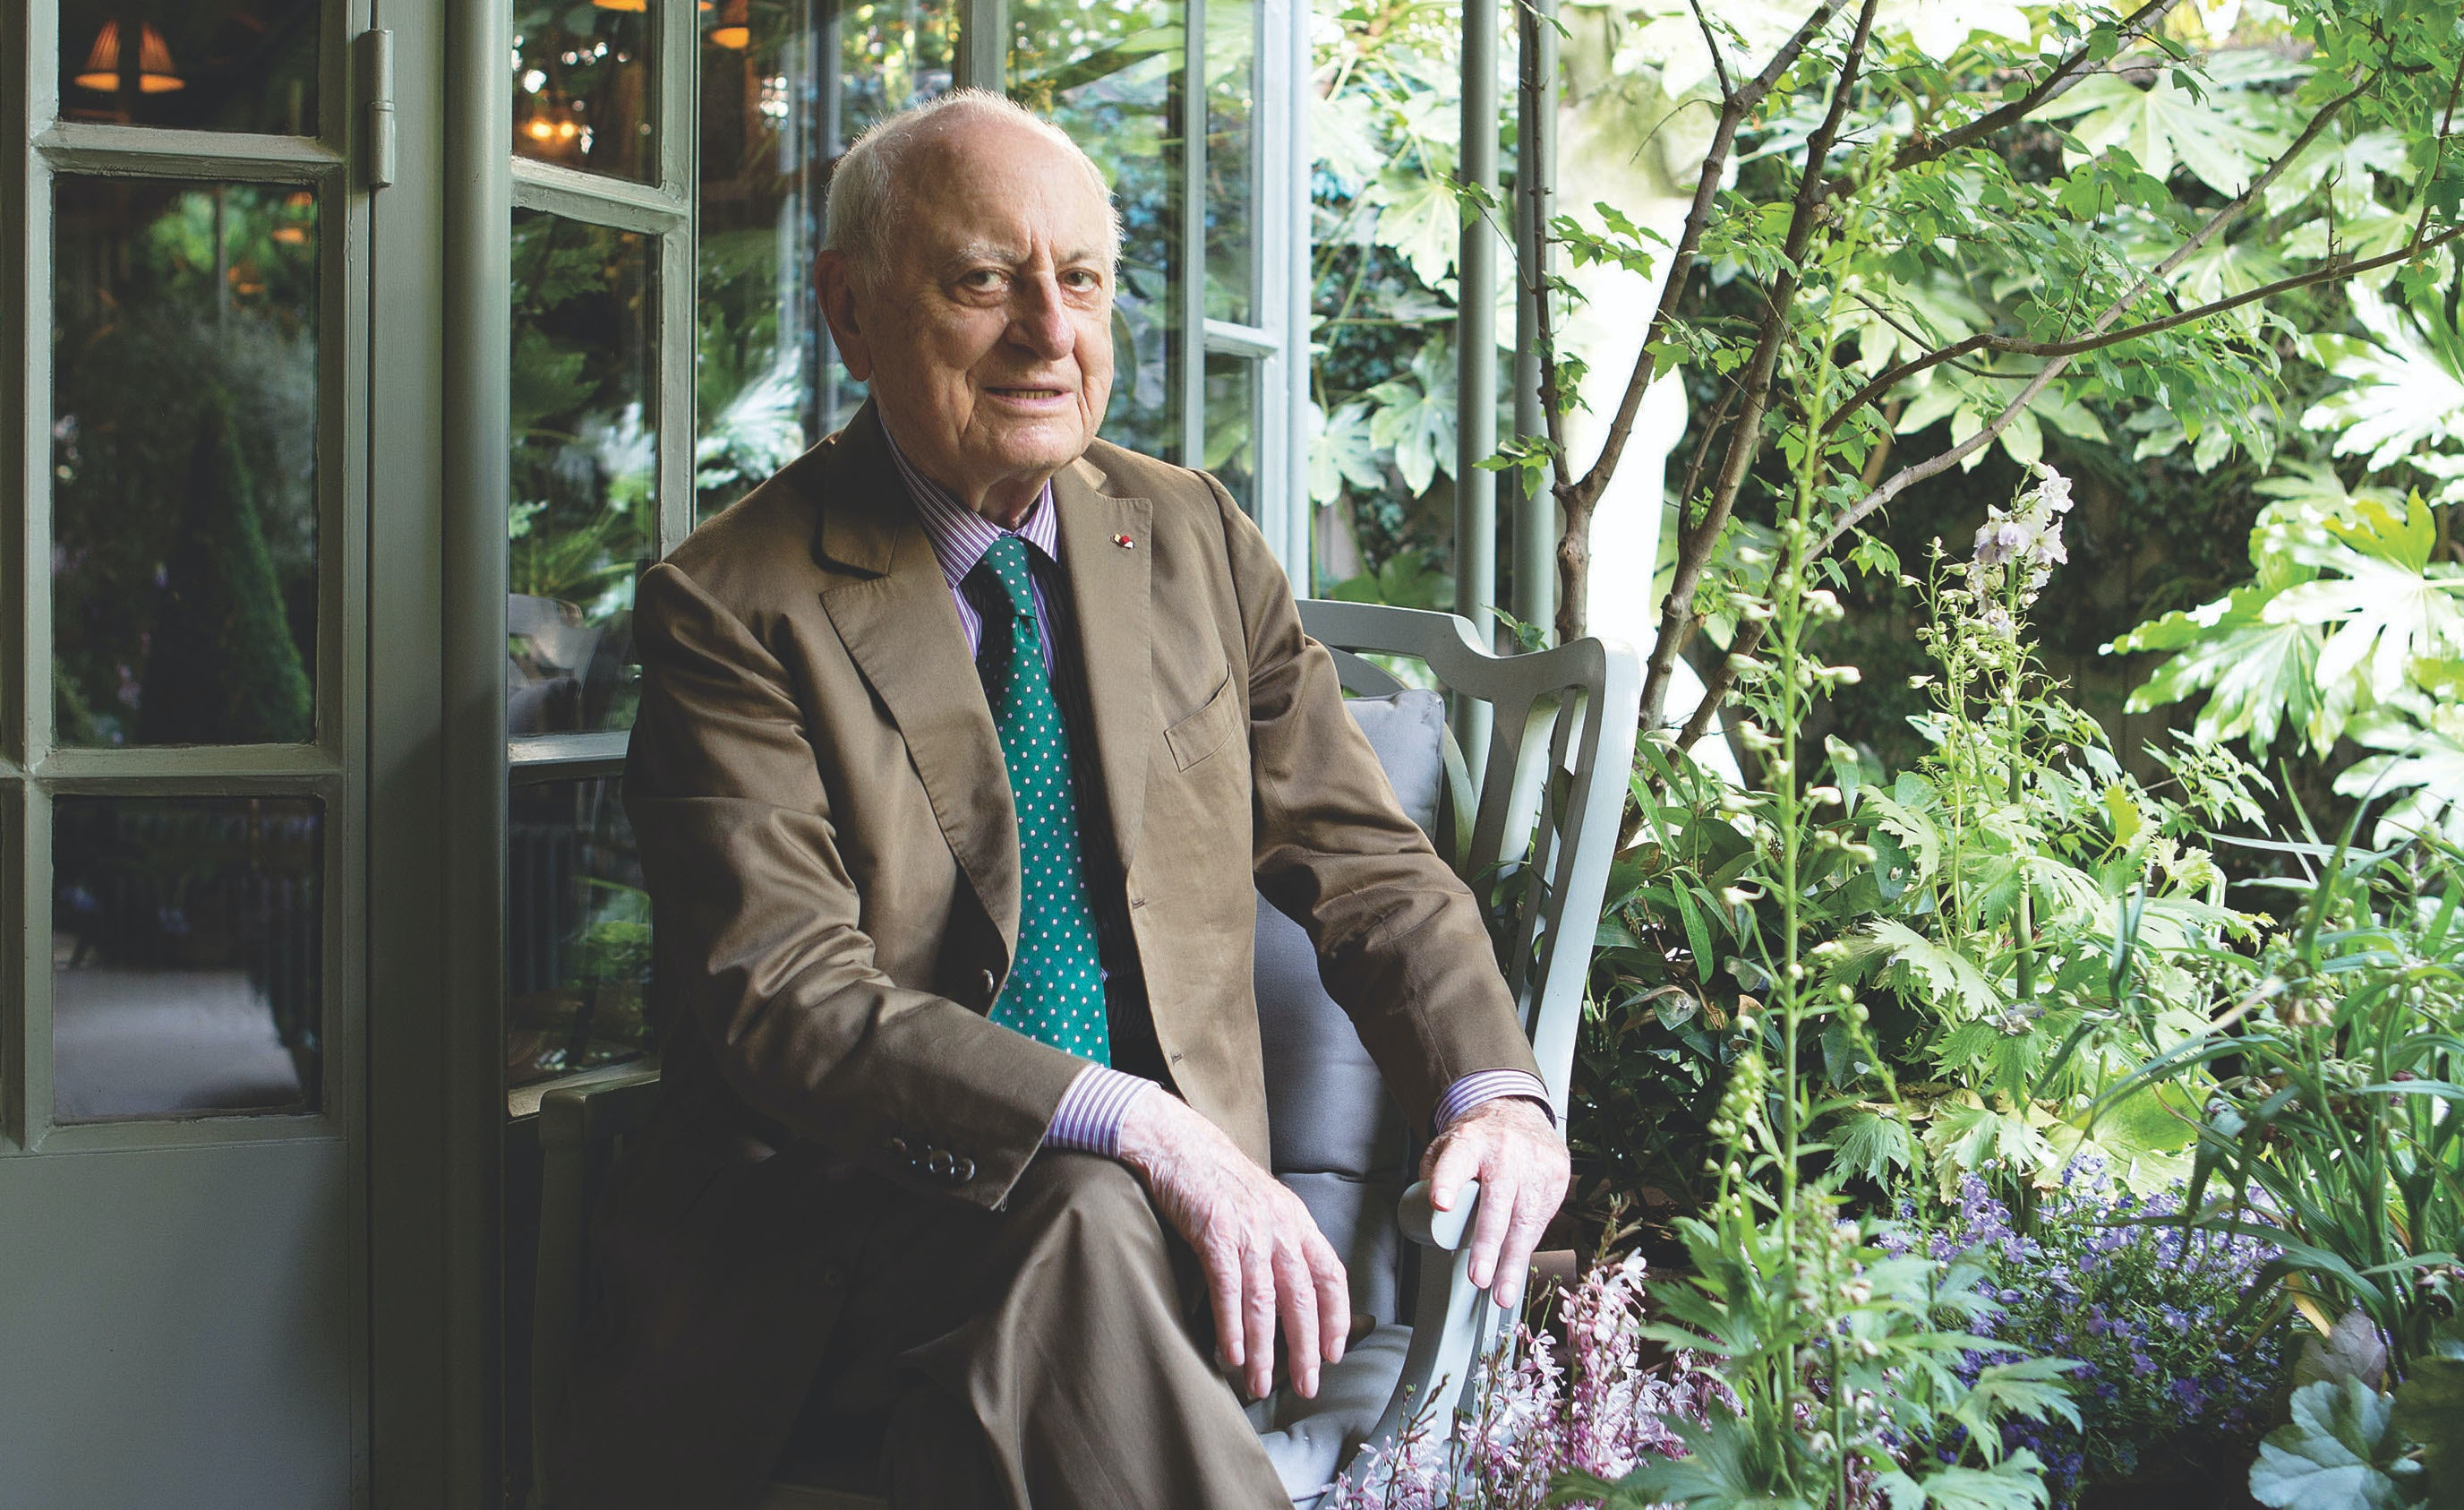 Pierre Bergé in 2015 | Photo: Eric Jansen